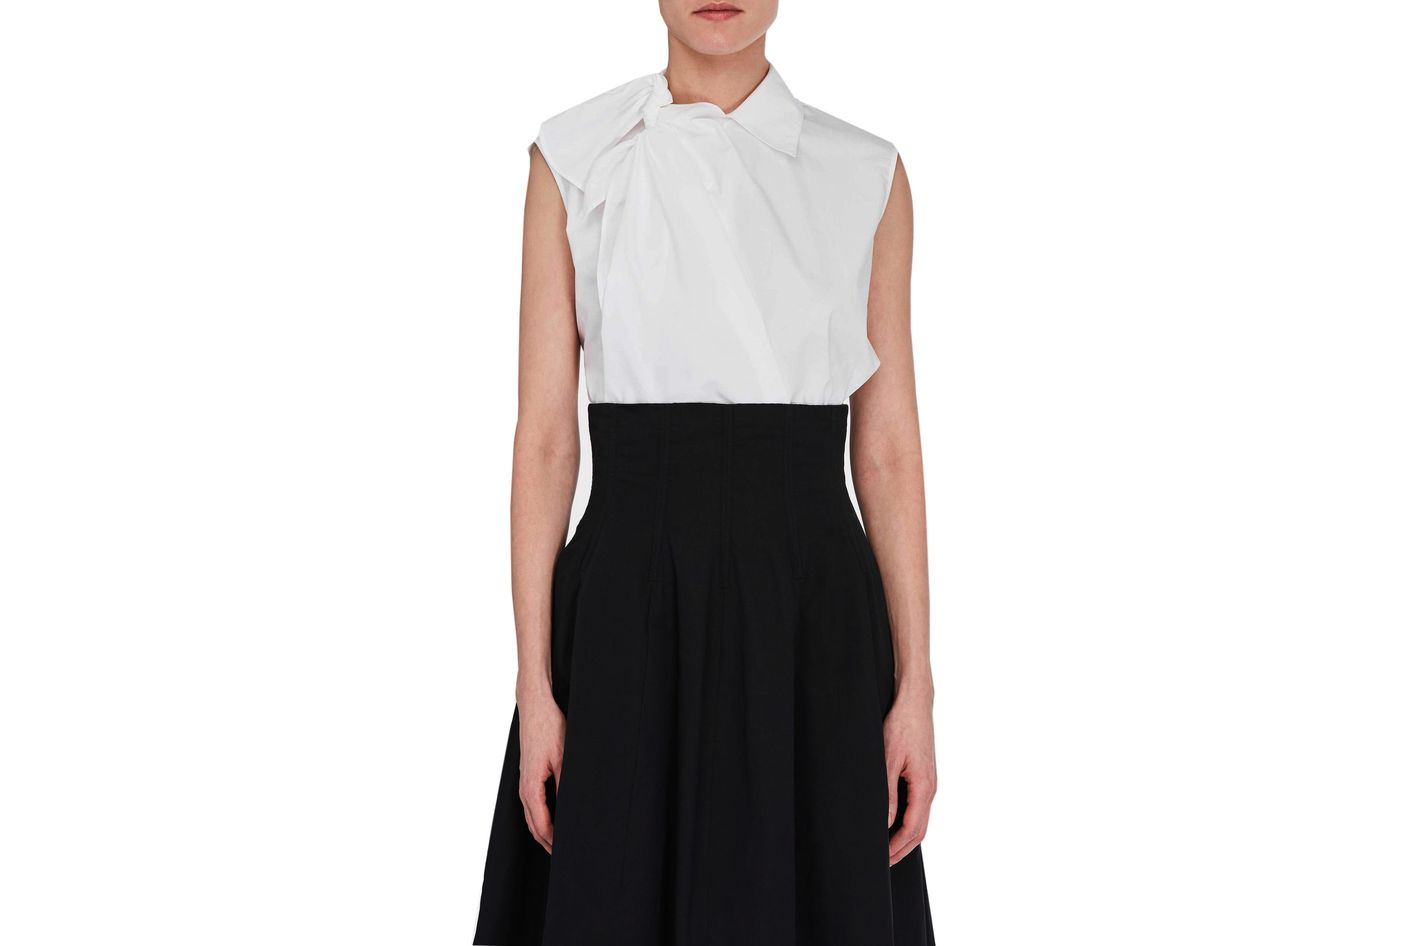 MM6 Maison Margiela Shoulder Tie Shirt